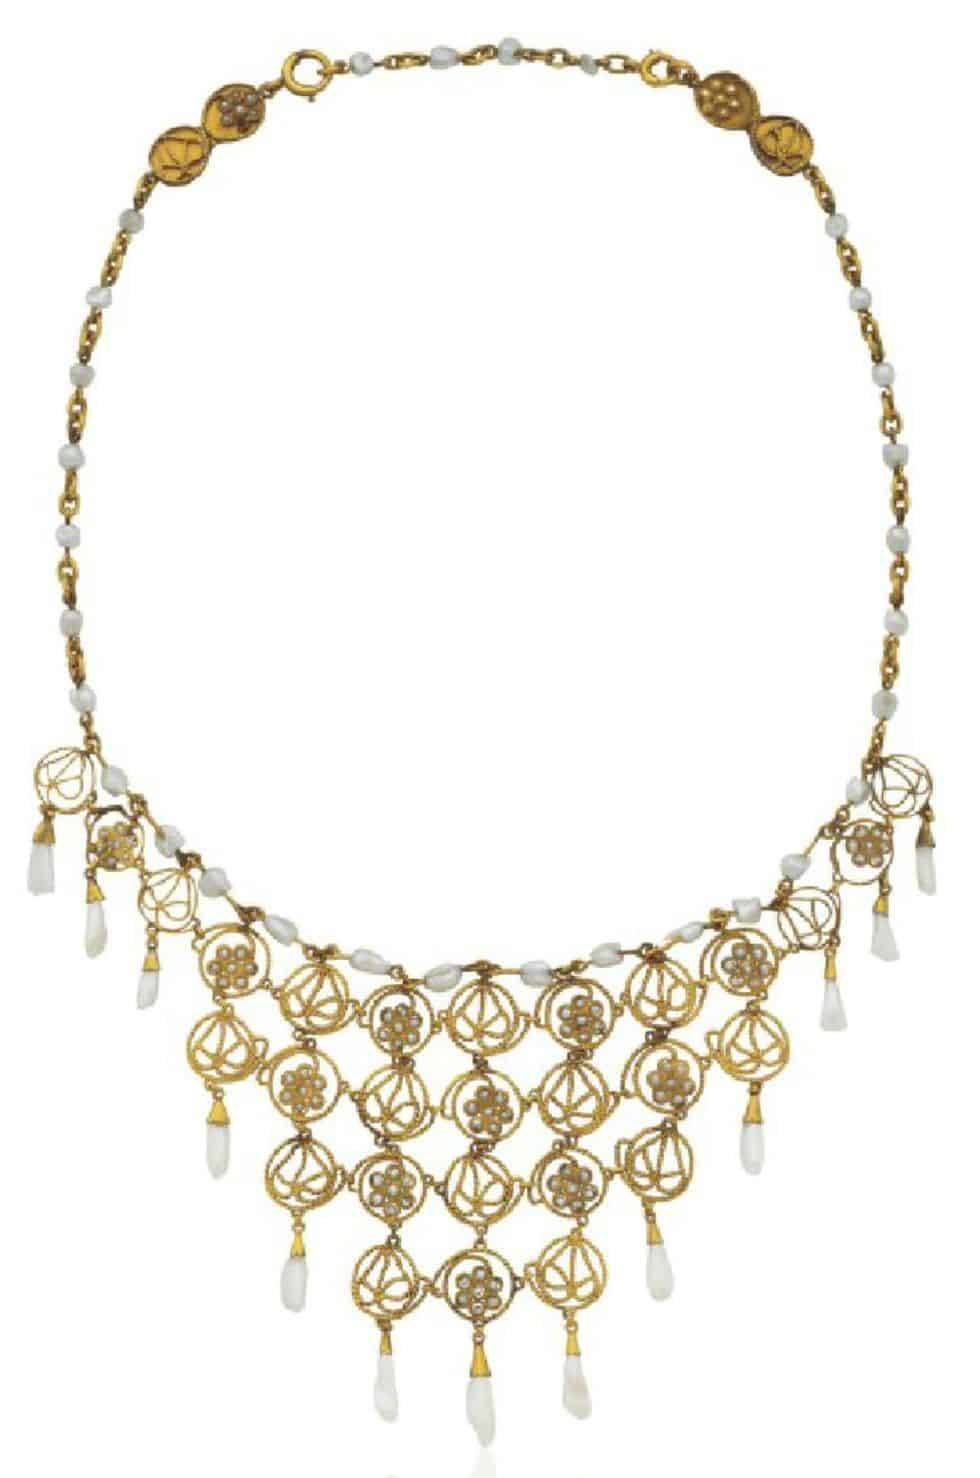 LOT 145 - A DELICATE PEARL AND GOLD BIB NECKLACE, BY LOUIS COMFORT TIFFANY, TIFFANY & CO.